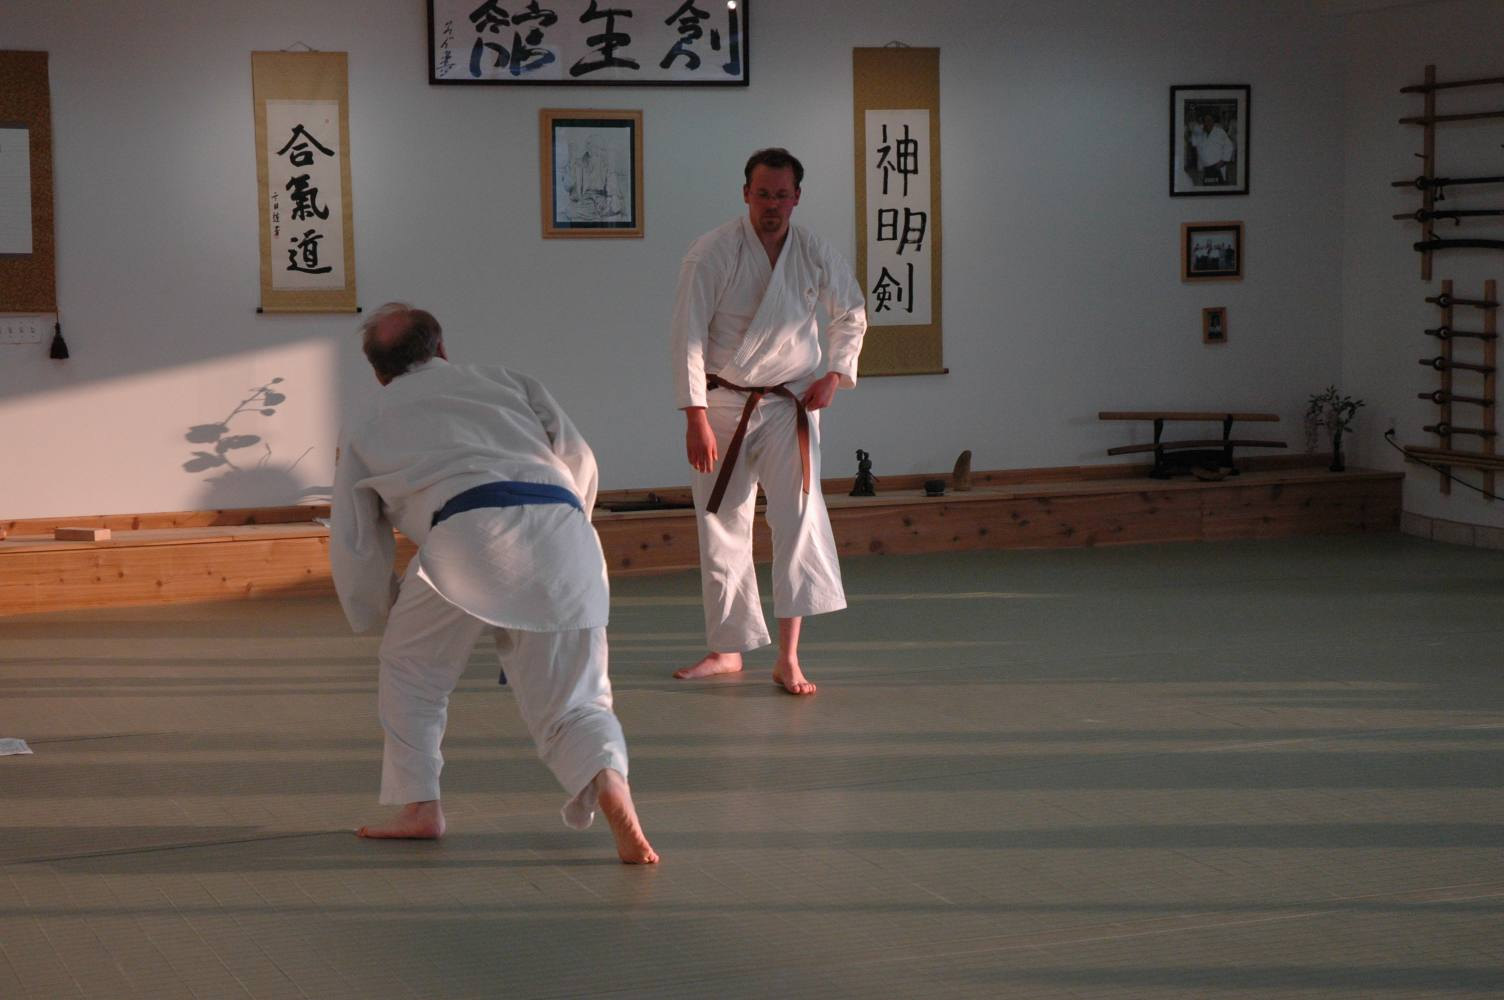 Nick's 1st kyu test at Soseikan Dojo